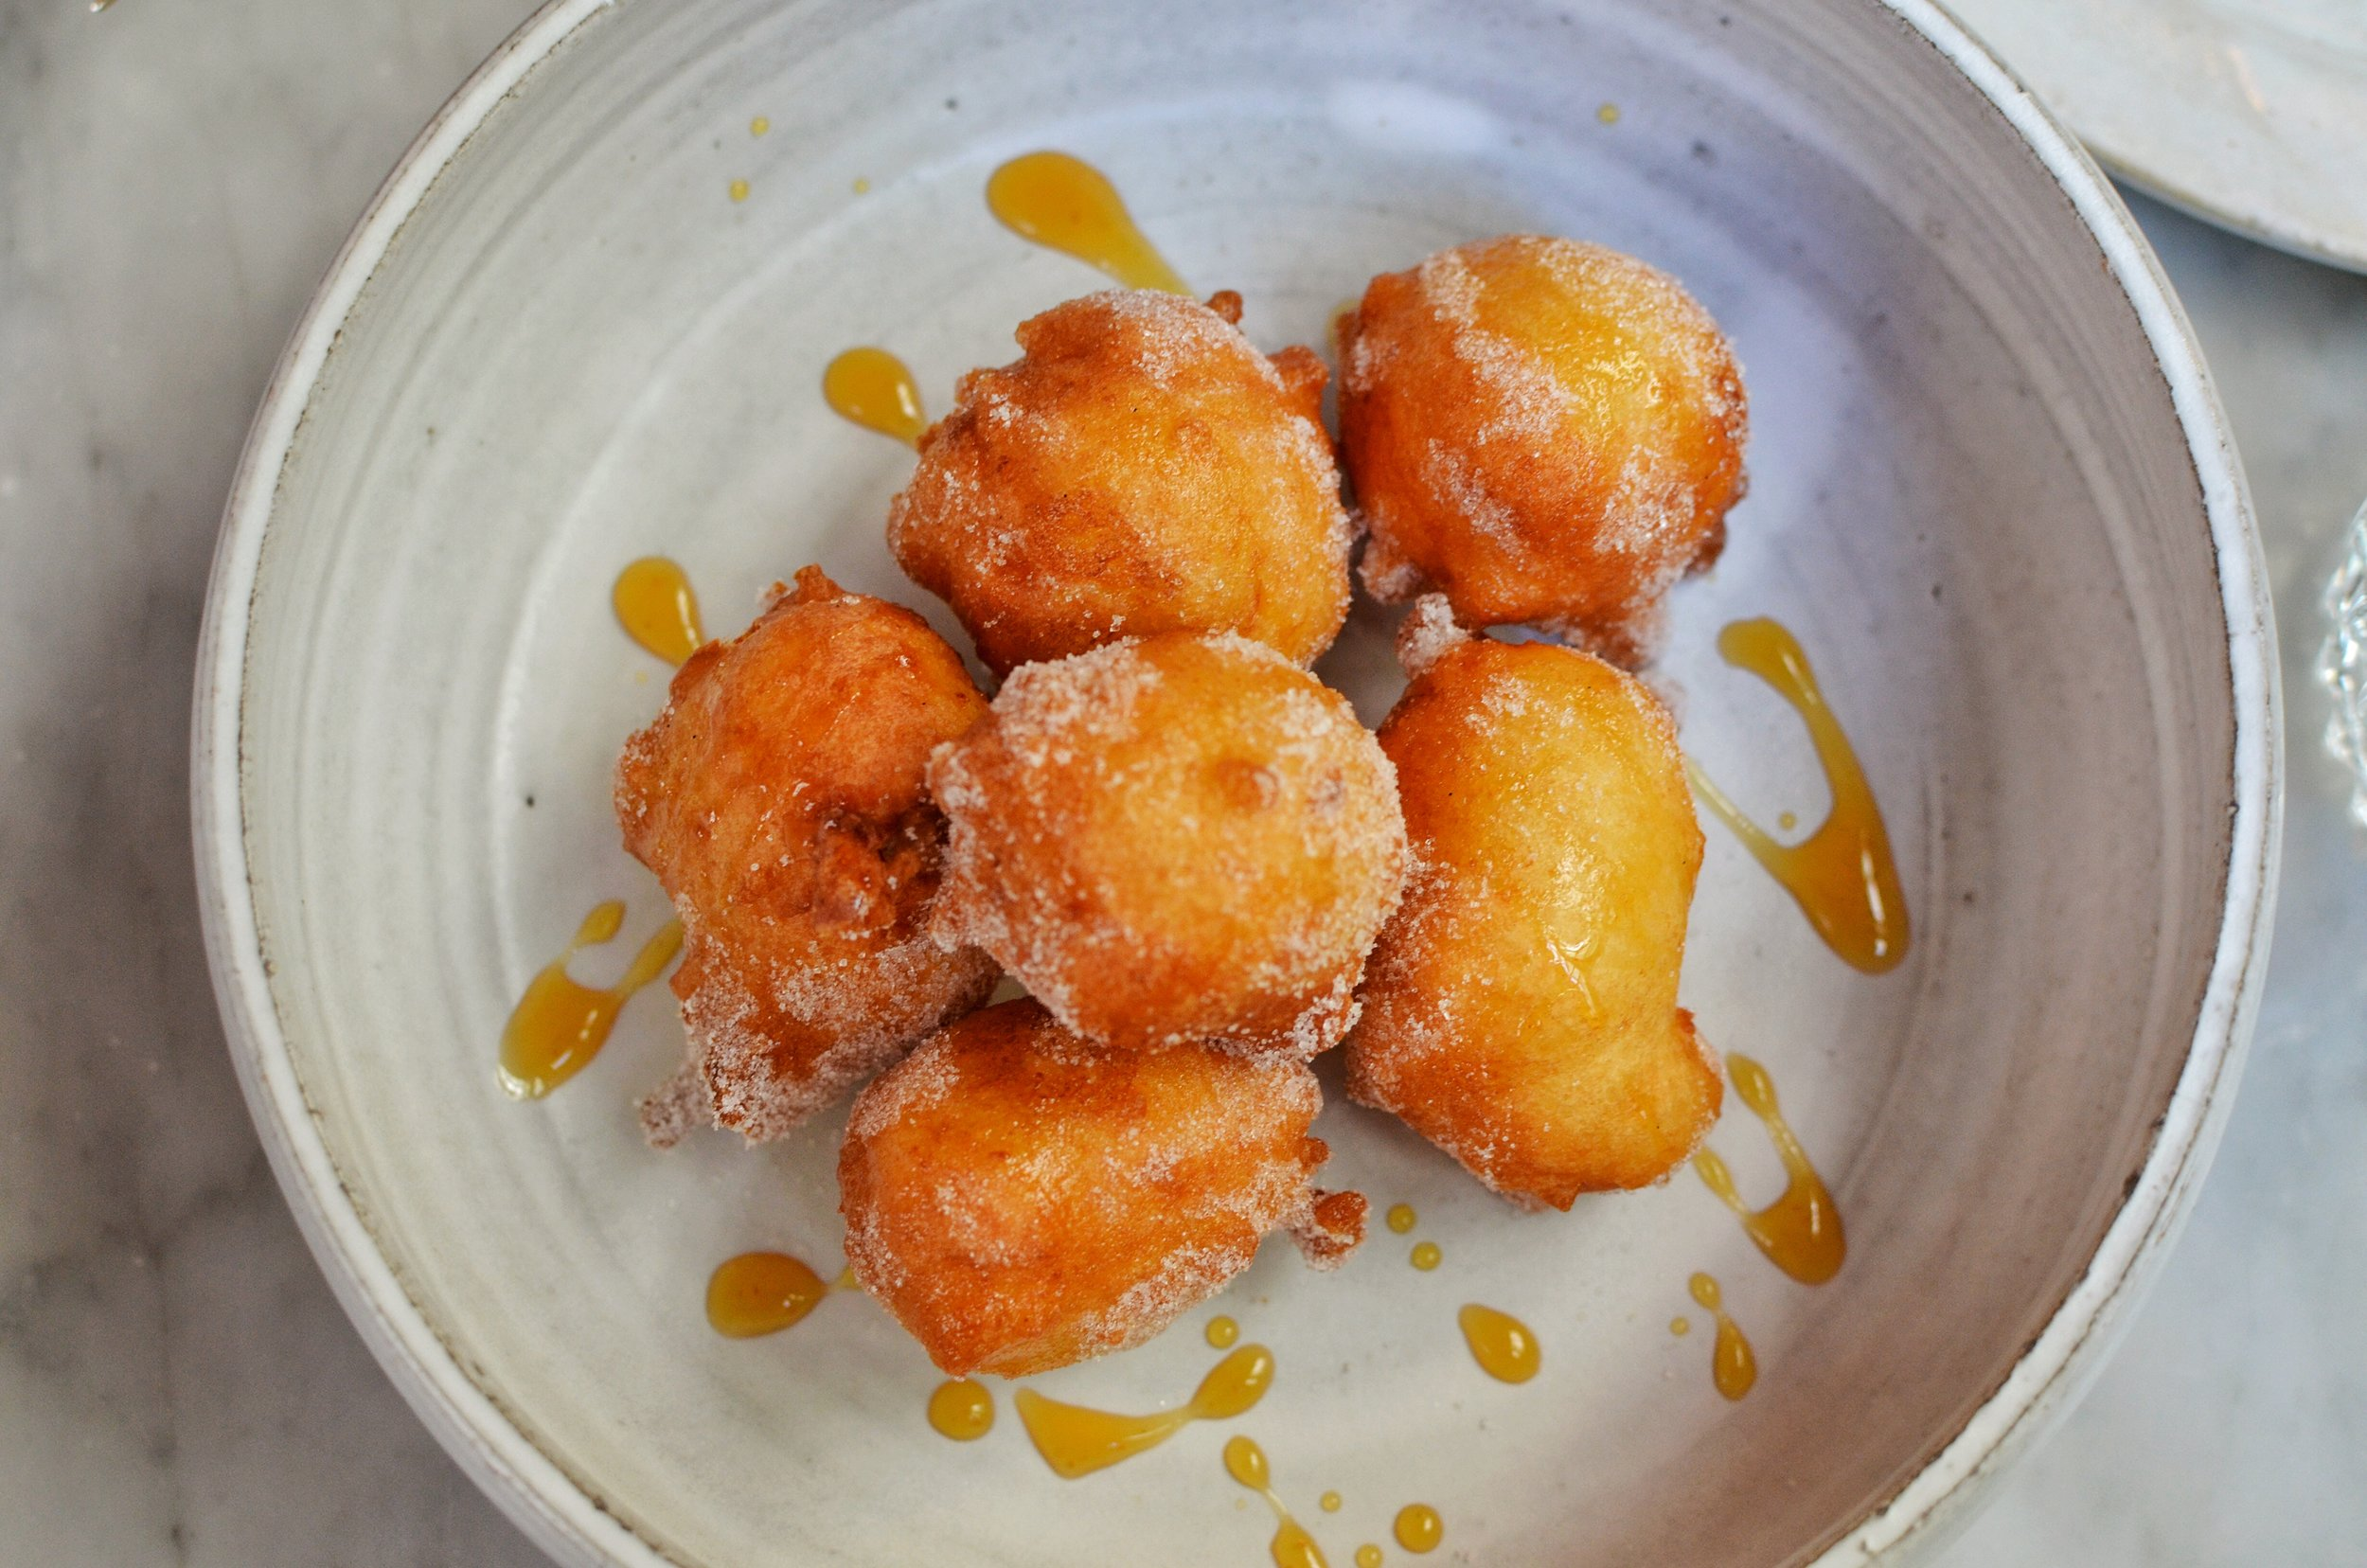 Ricotta donuts, whey caramel, vanilla- The ricotta makes these donuts so soft and moist. It's hard to resist eating all of them at once.